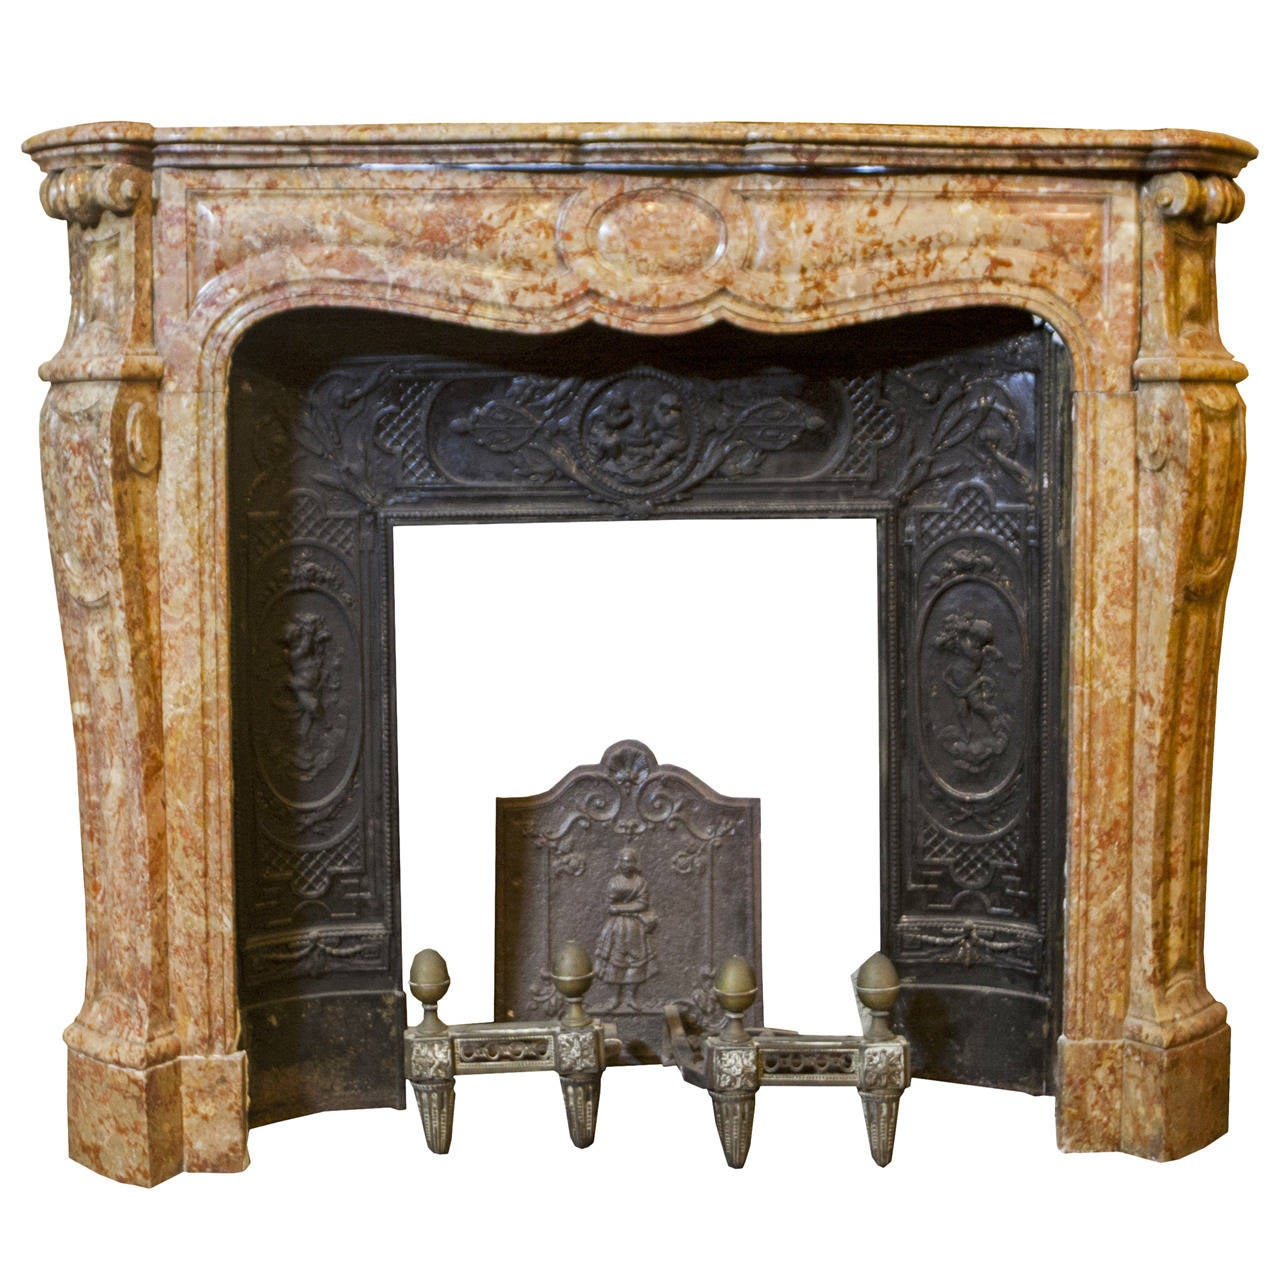 Antique rosso antico marble fireplace for sale at 1stdibs for Marble mantels for sale